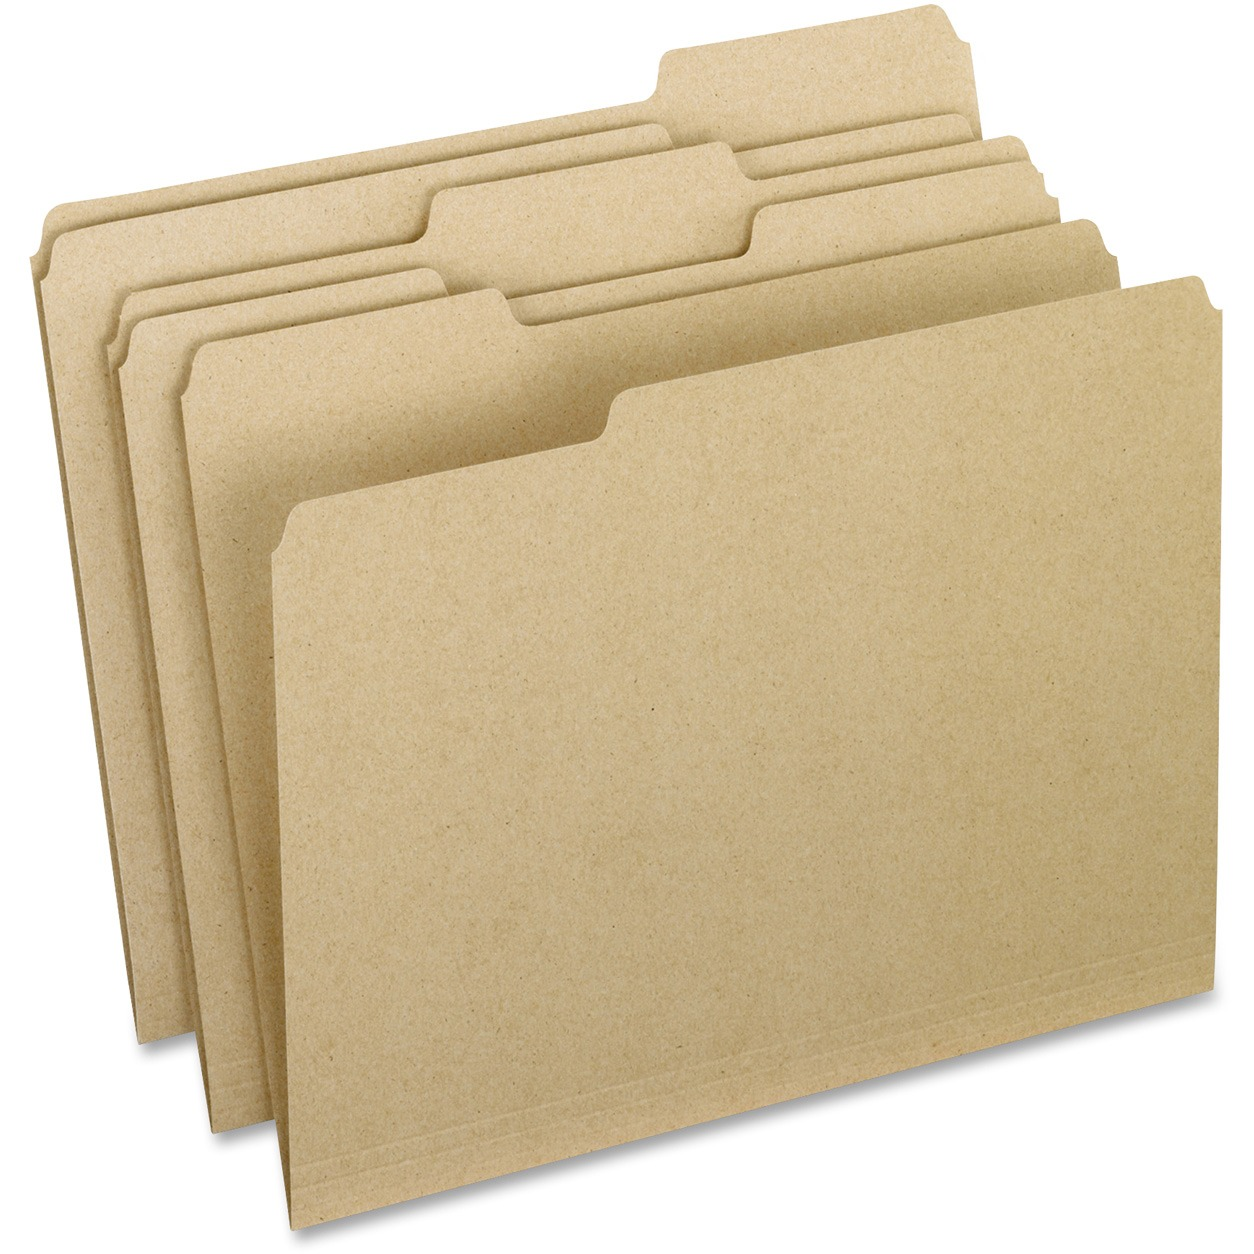 Earthwise Recycled Colored File Folders, 1/3 Top Tab, Letter, Natural, 100/BX